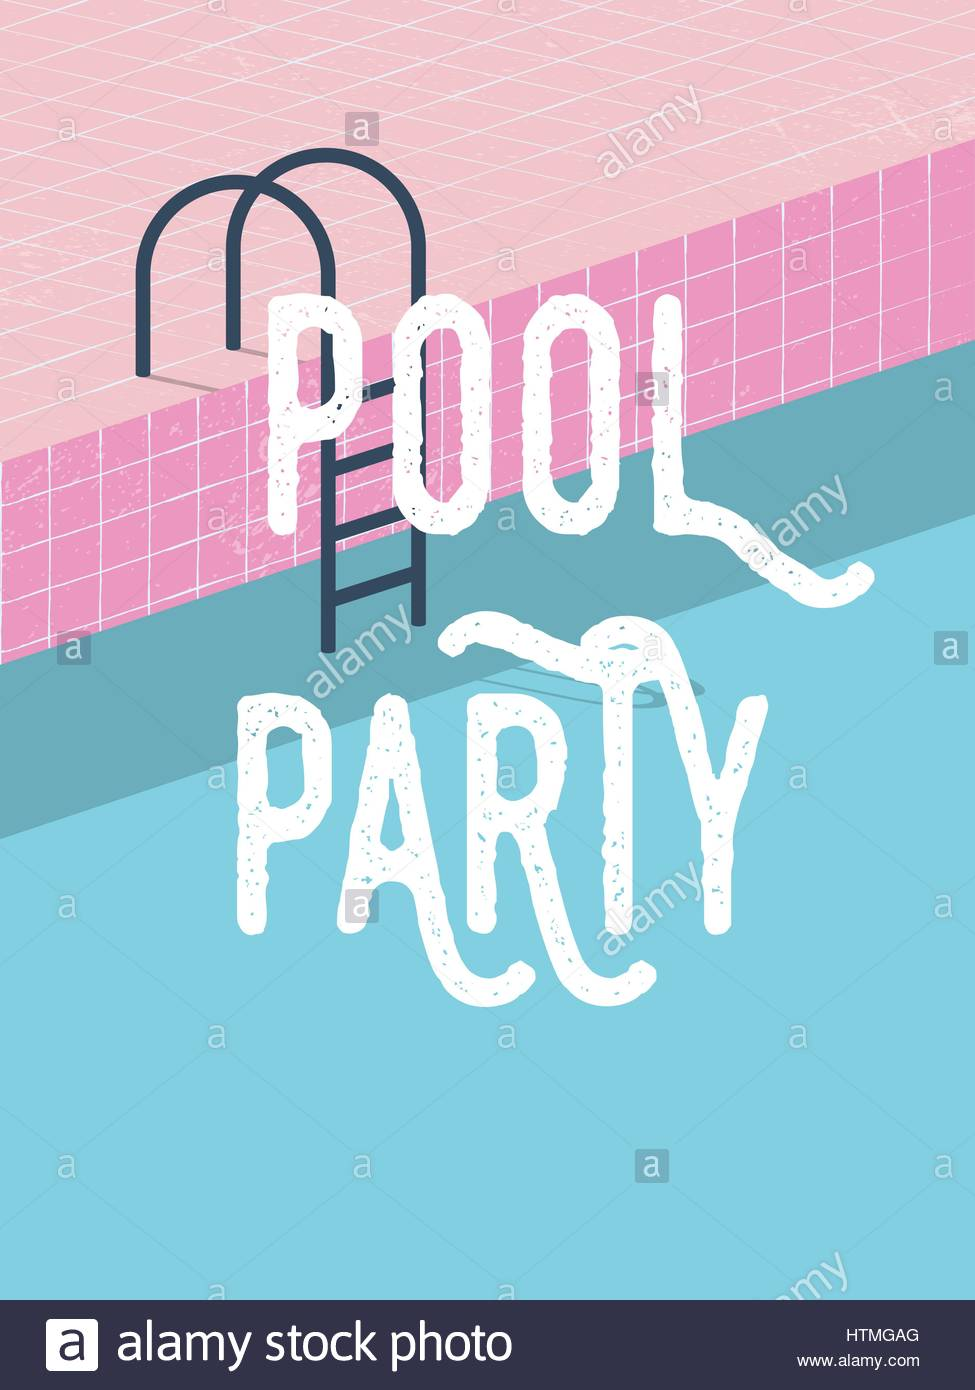 Pool party in summer invitation poster template concept with retro pool party in summer invitation poster template concept with retro style vector illustration and creative typography eps10 vector illustration stopboris Images